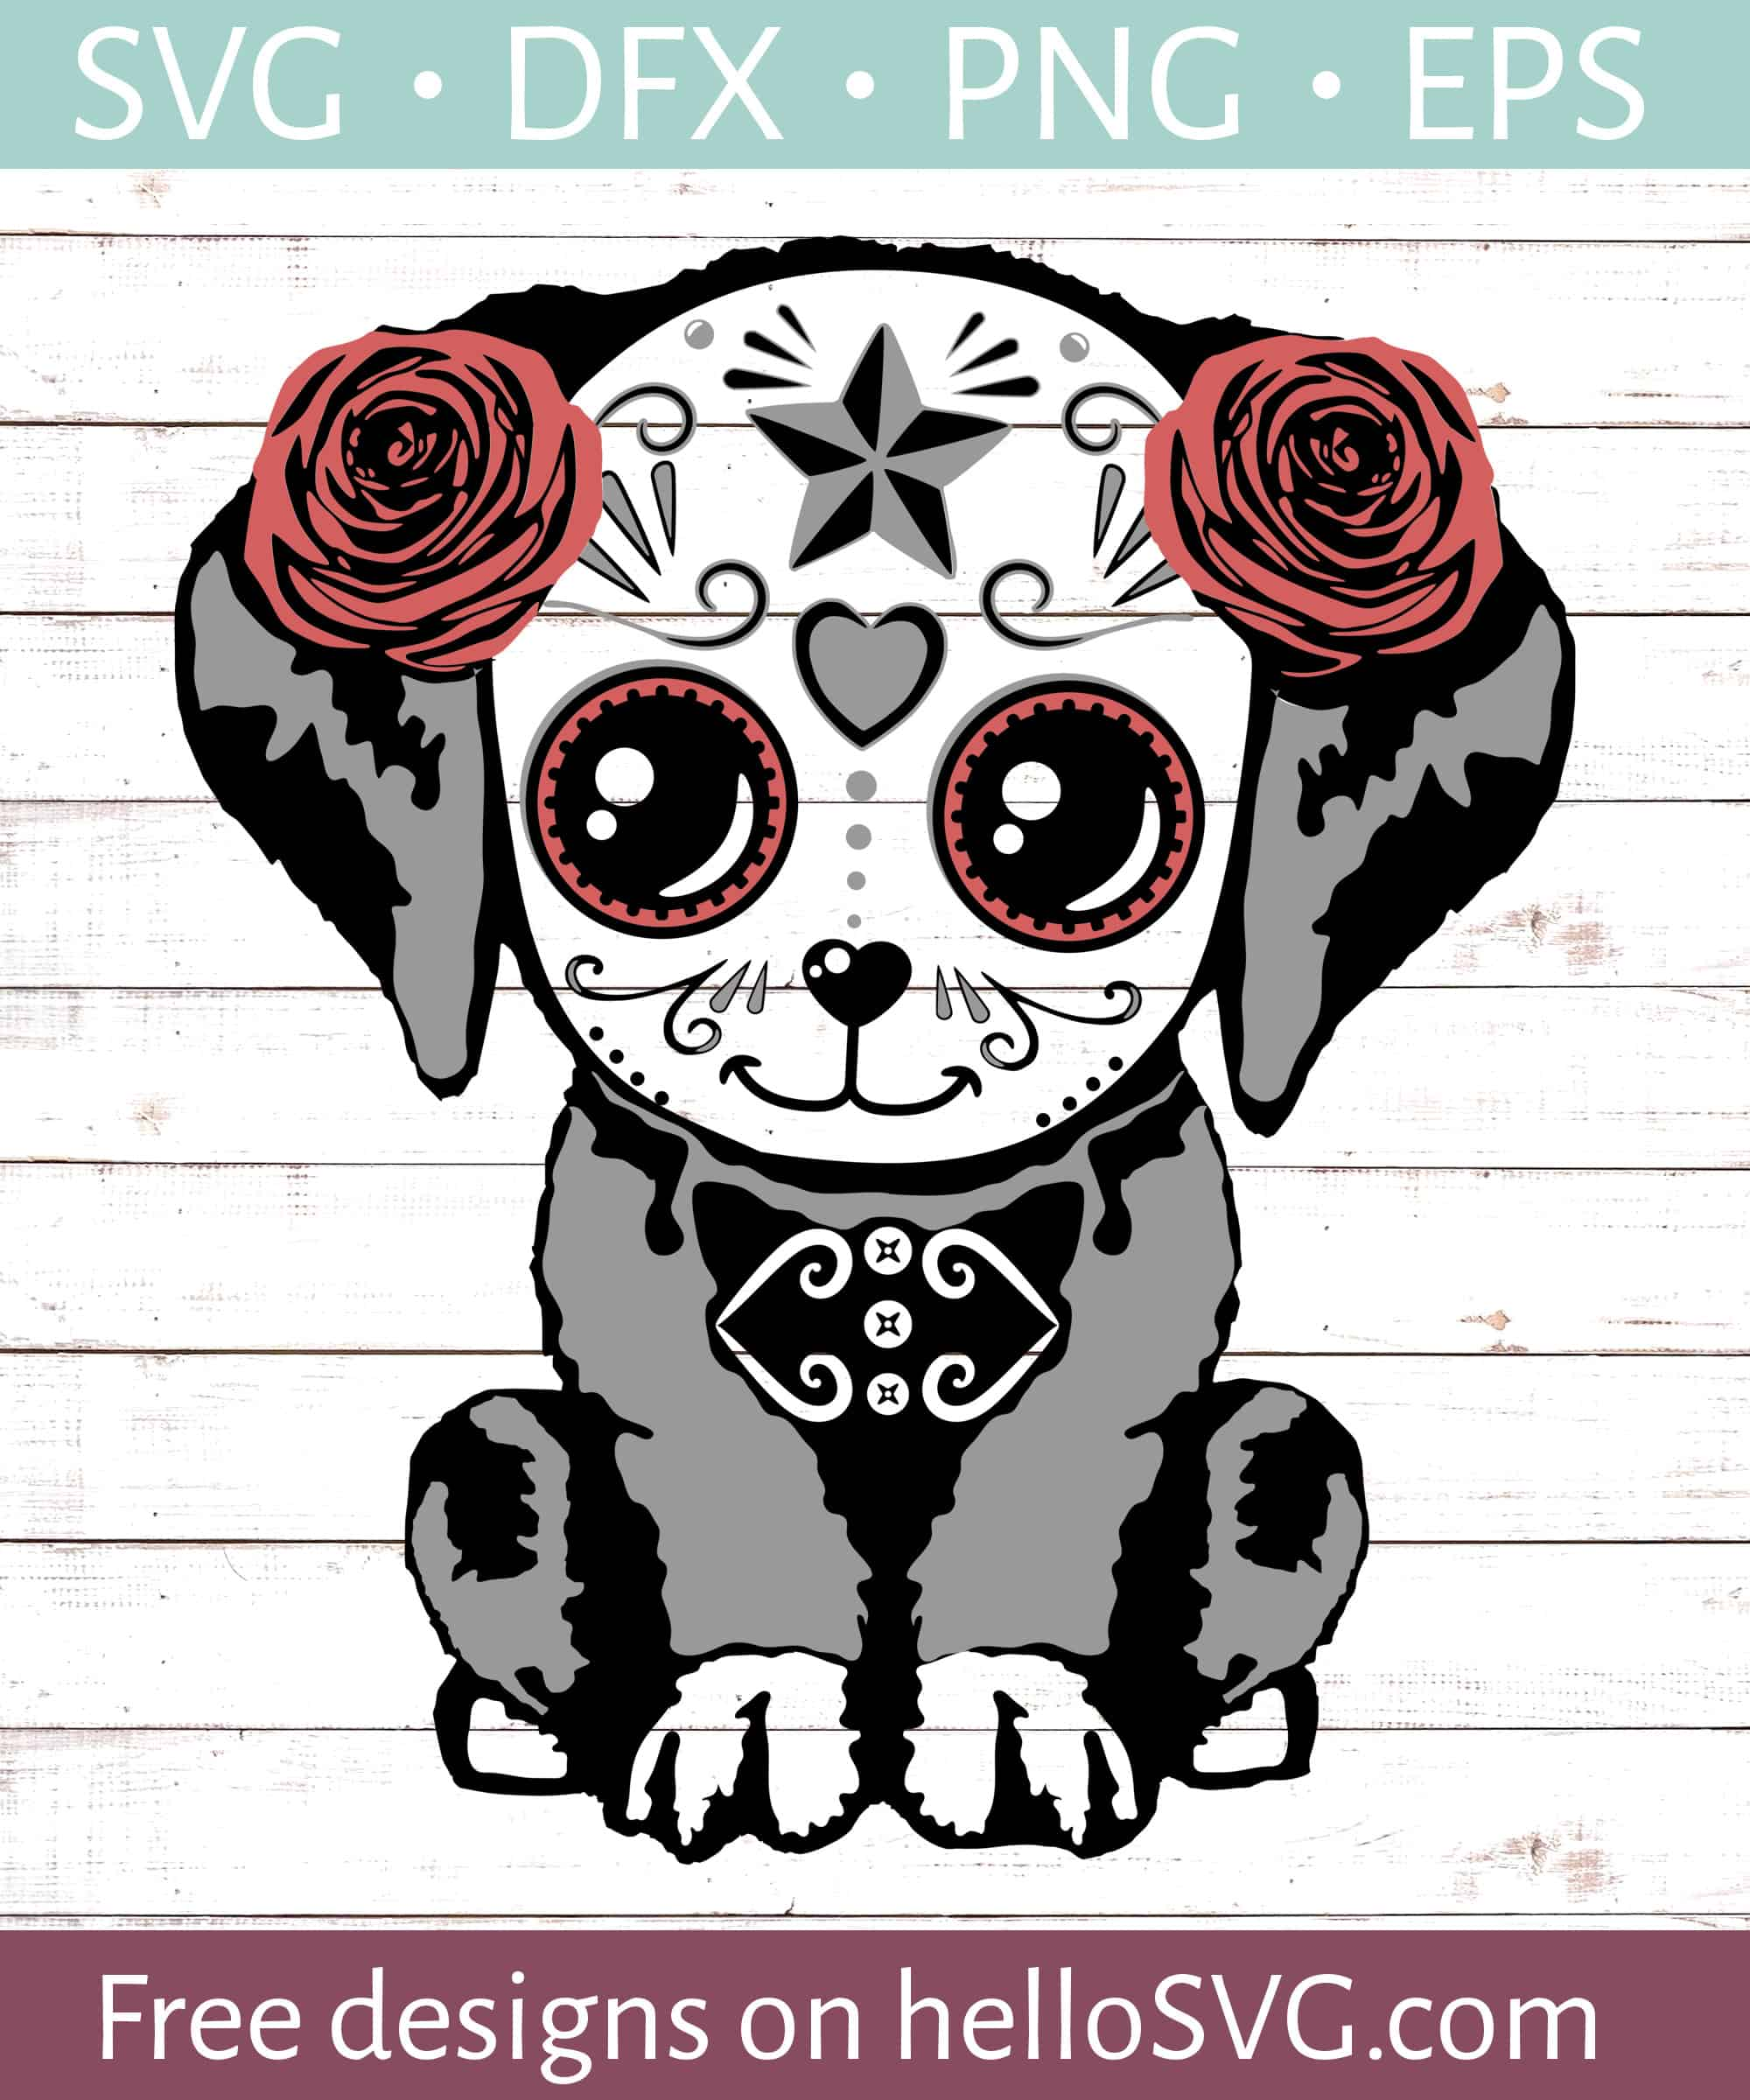 Download Sugar Skull Dog #1 SVG - Free SVG files | HelloSVG.com